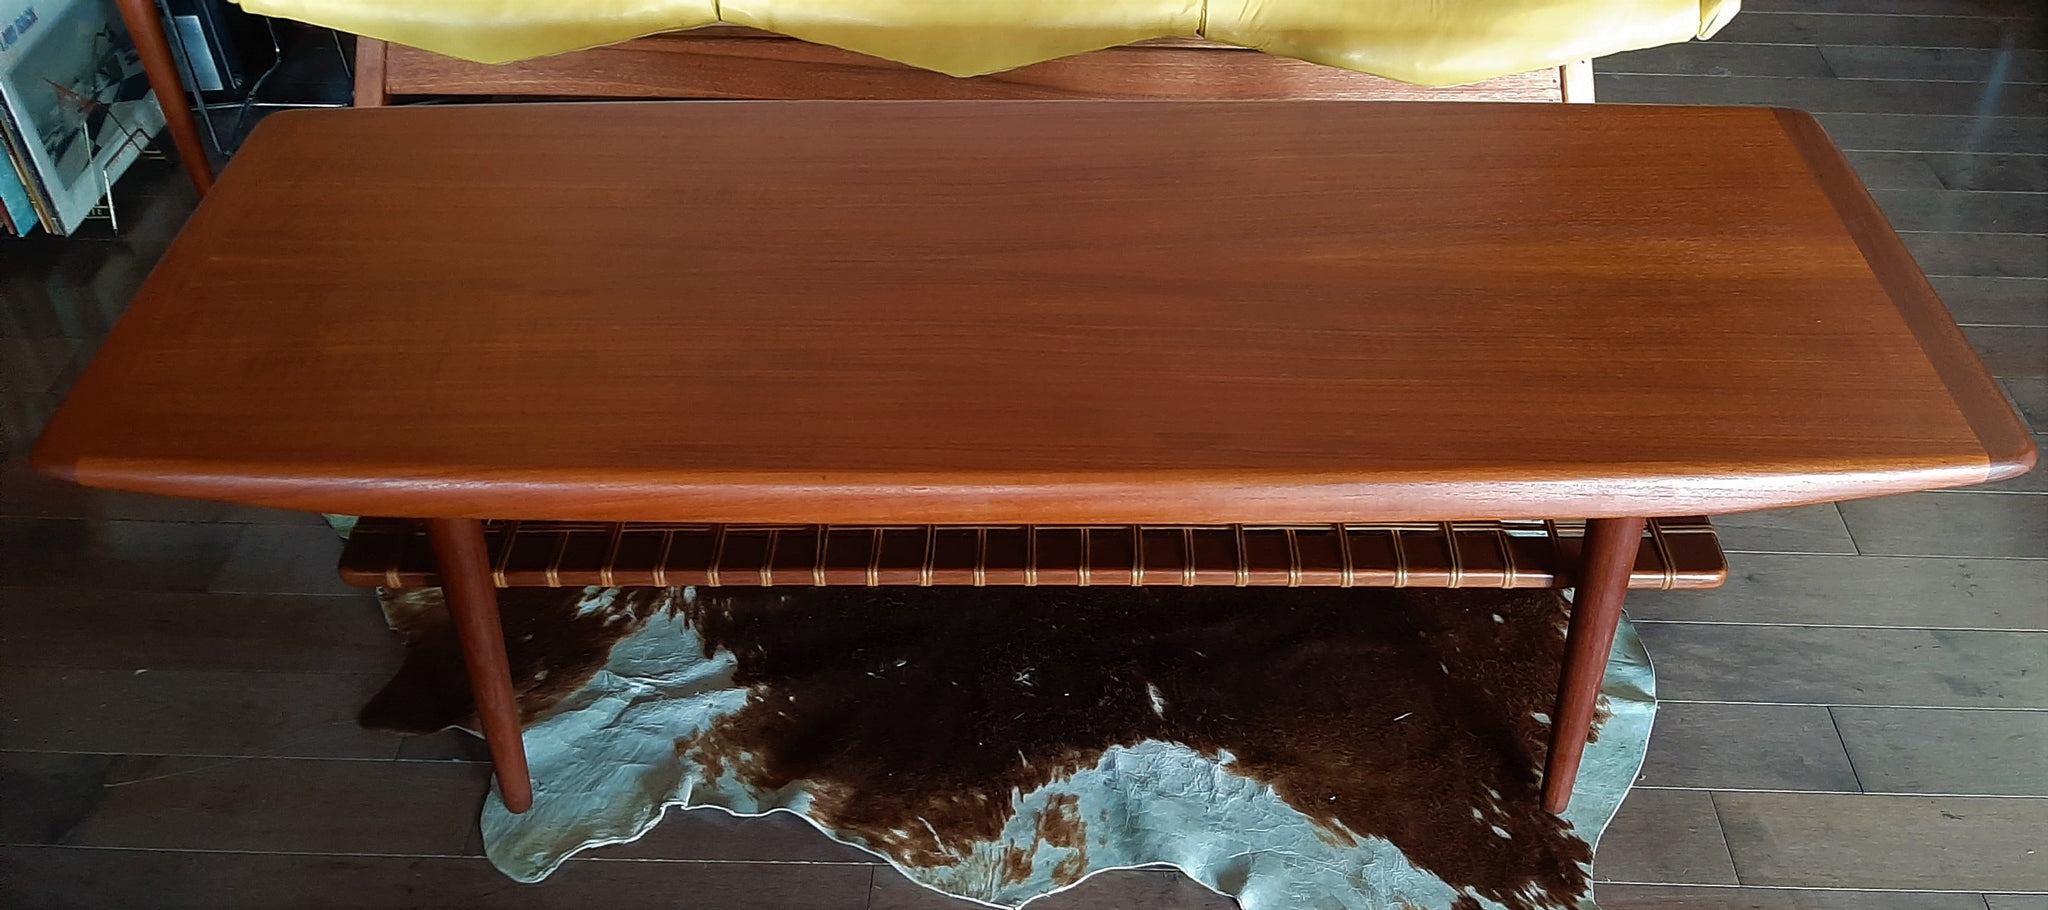 REFINISHED Danish MCM Teak Coffee Table Surfboard with ...